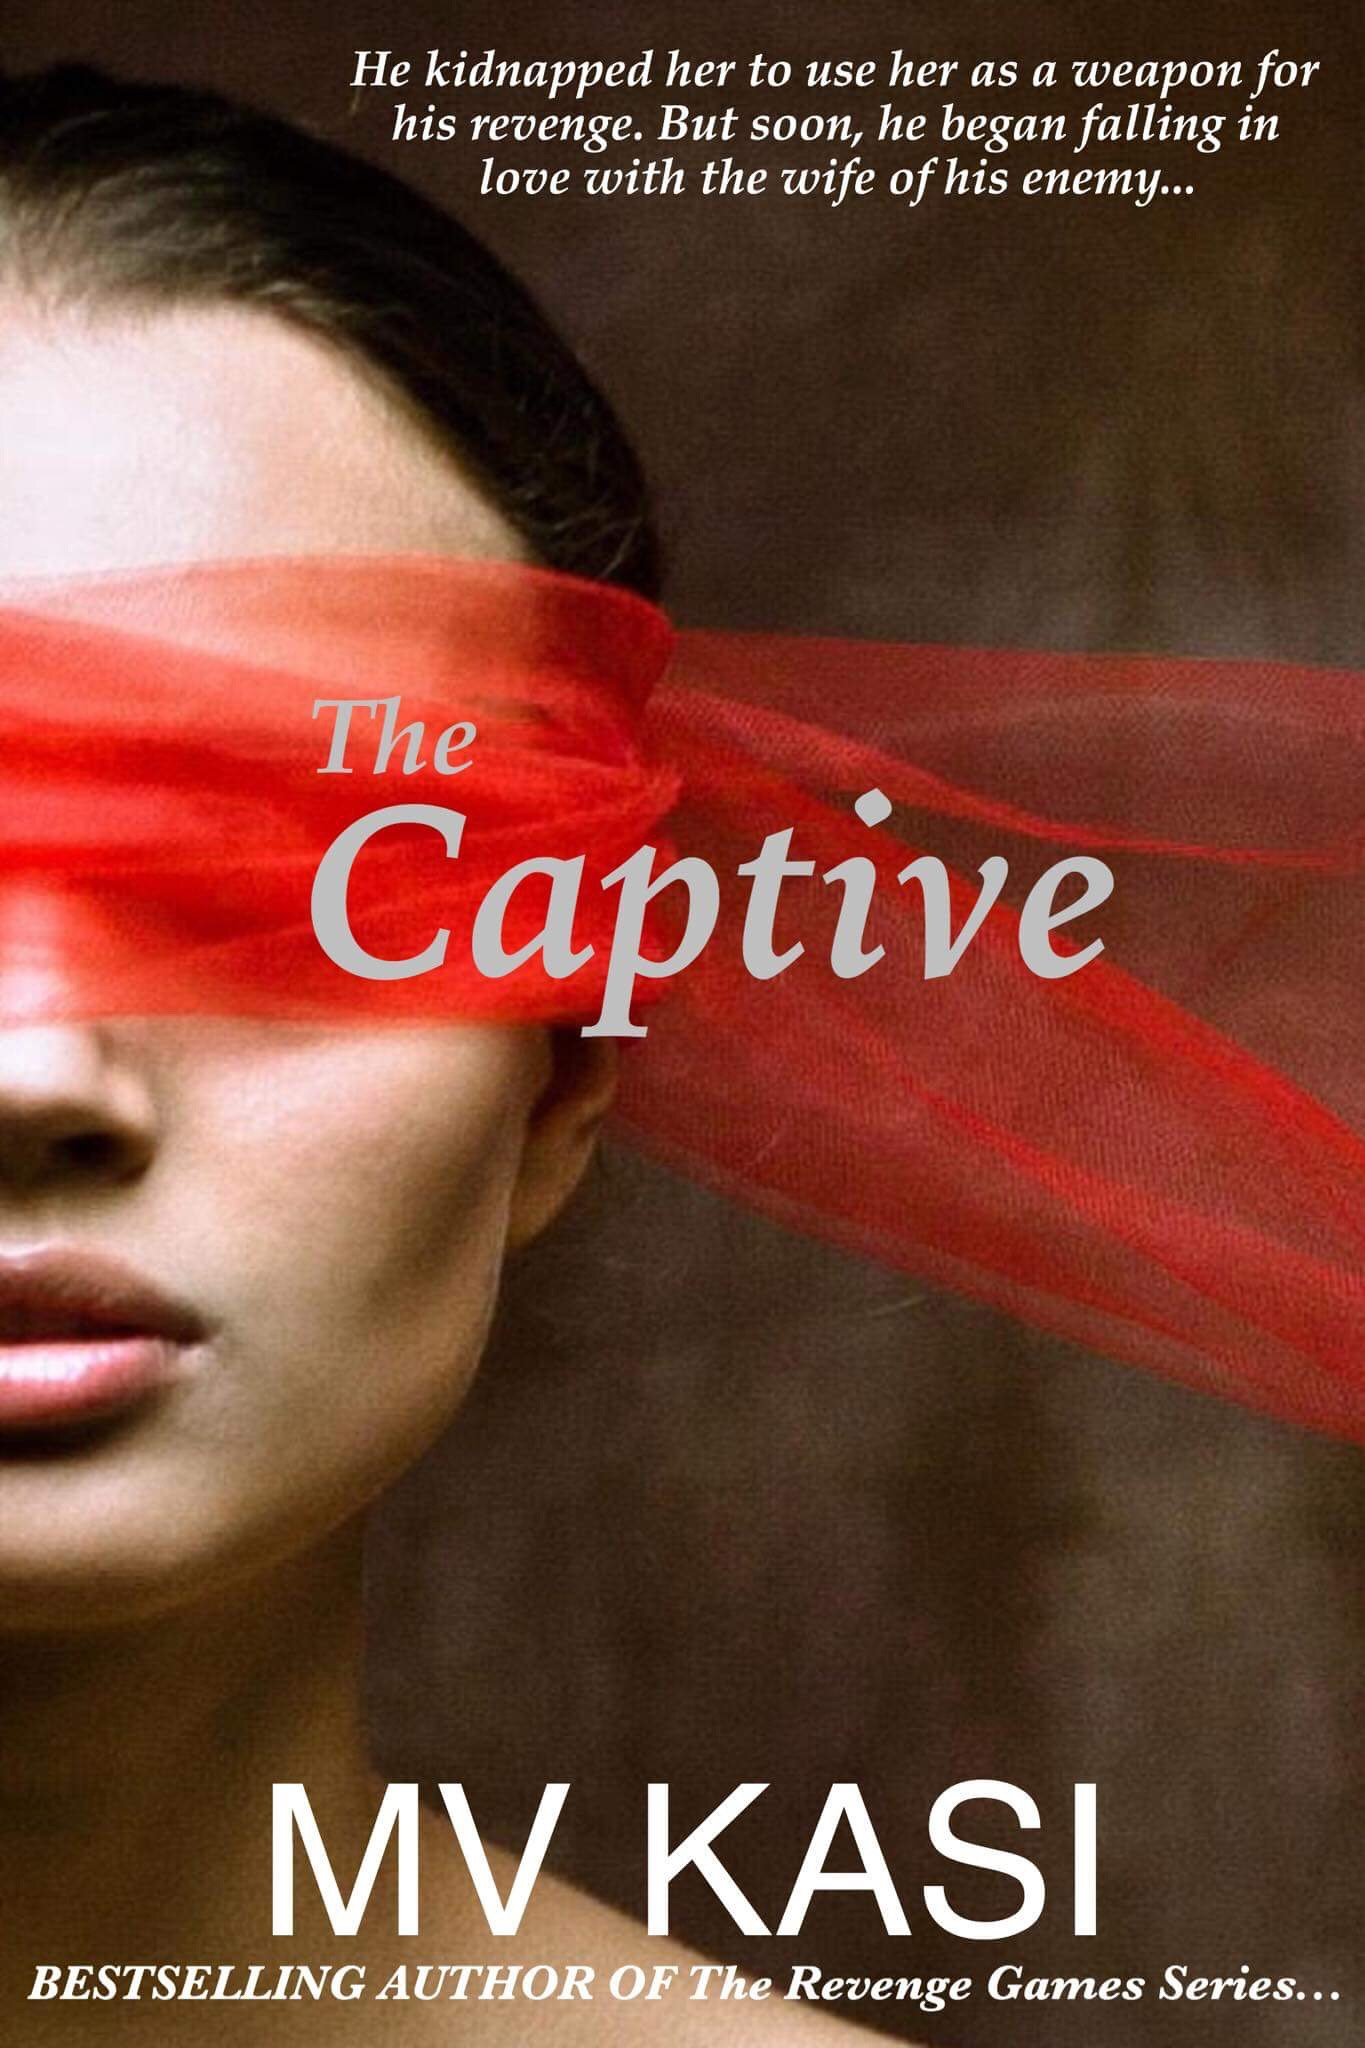 Kasi - The Captive